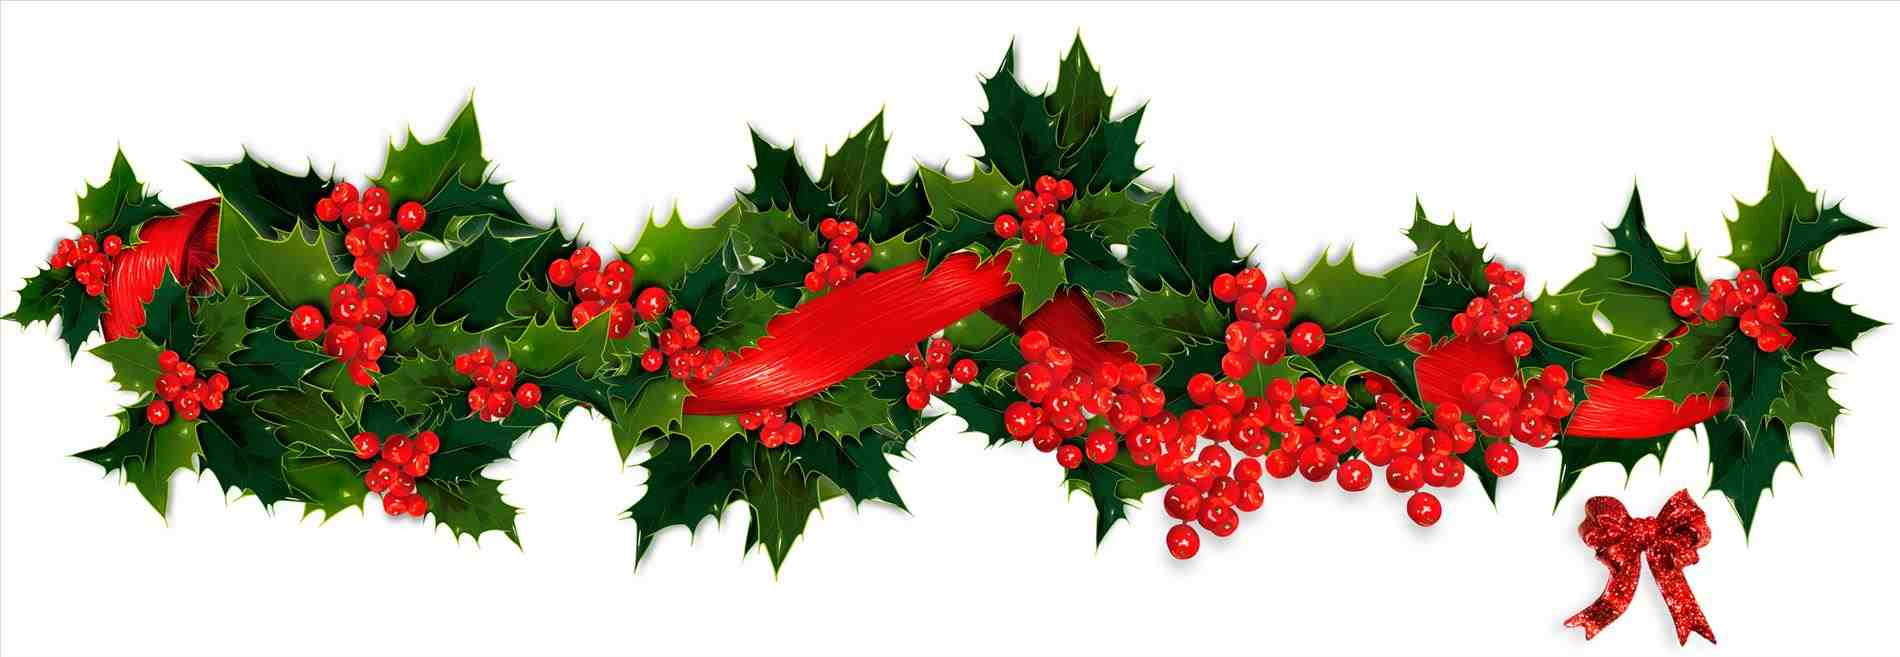 1900x657 Free Christmas Holly Clip Art Cheminee.website